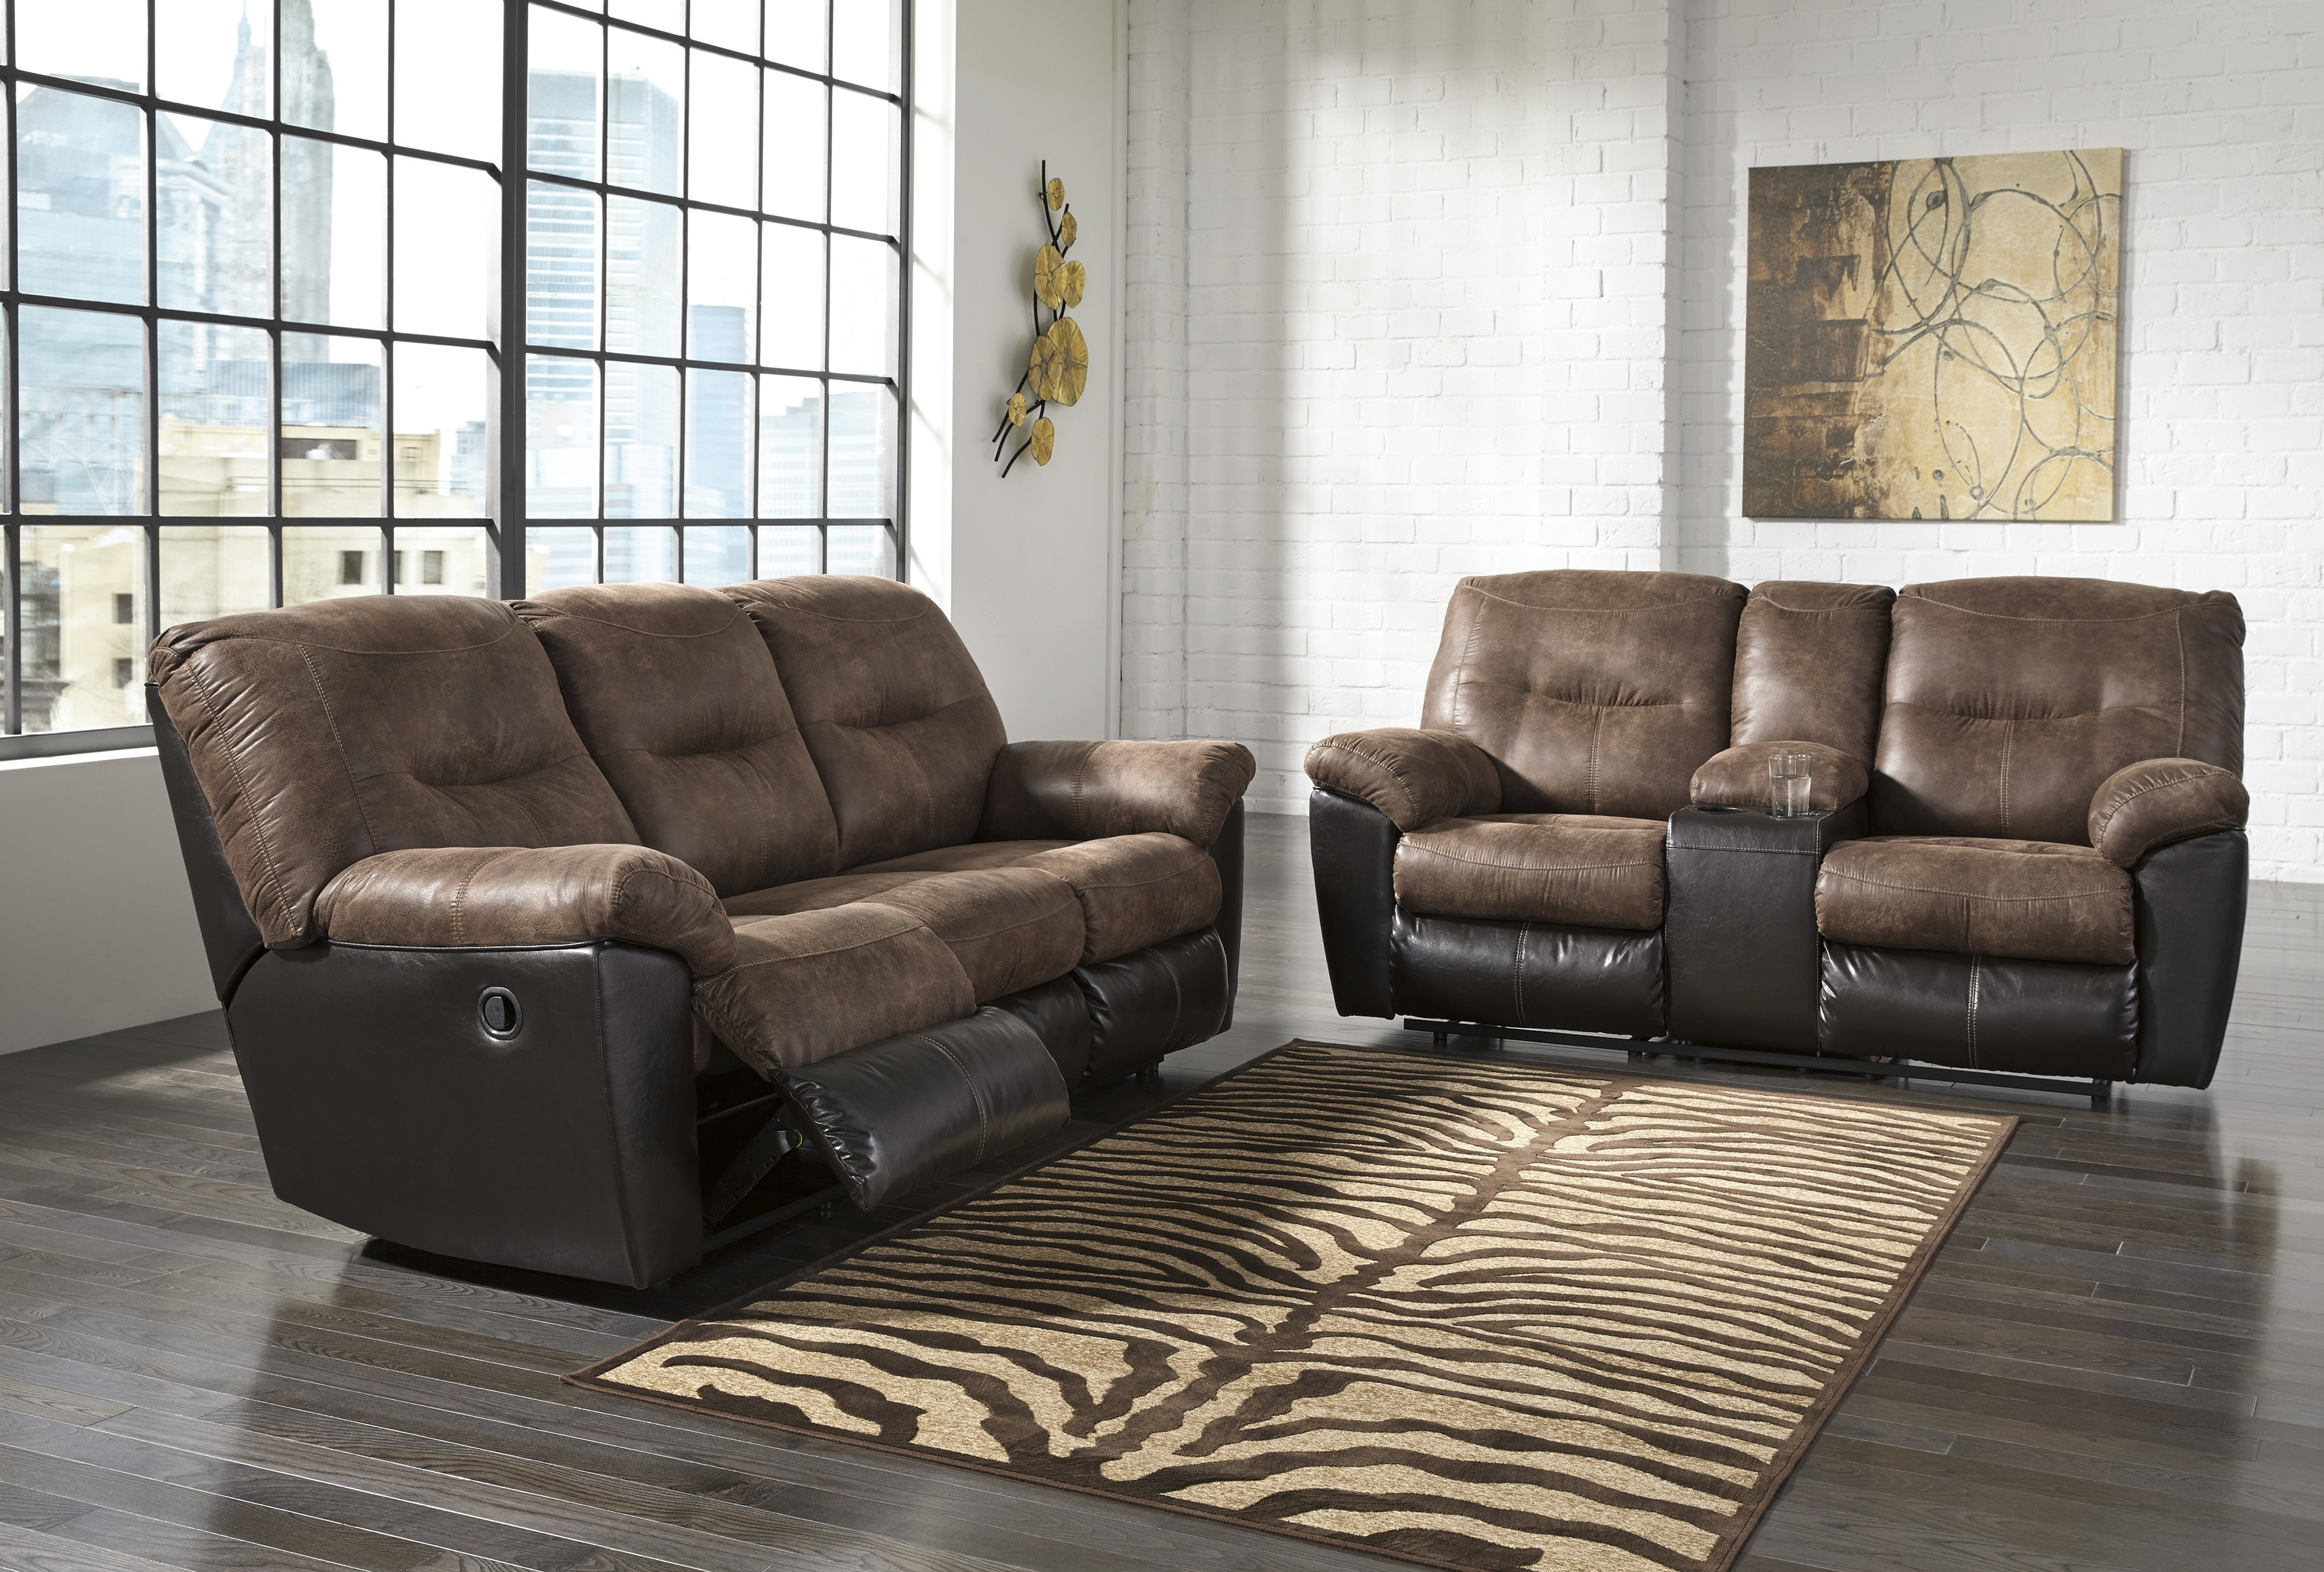 Most Recent Sectional Couches Salt Lake City Slumberland Loveseats Hom With Regard To Salt Lake City Sectional Sofas (View 3 of 20)